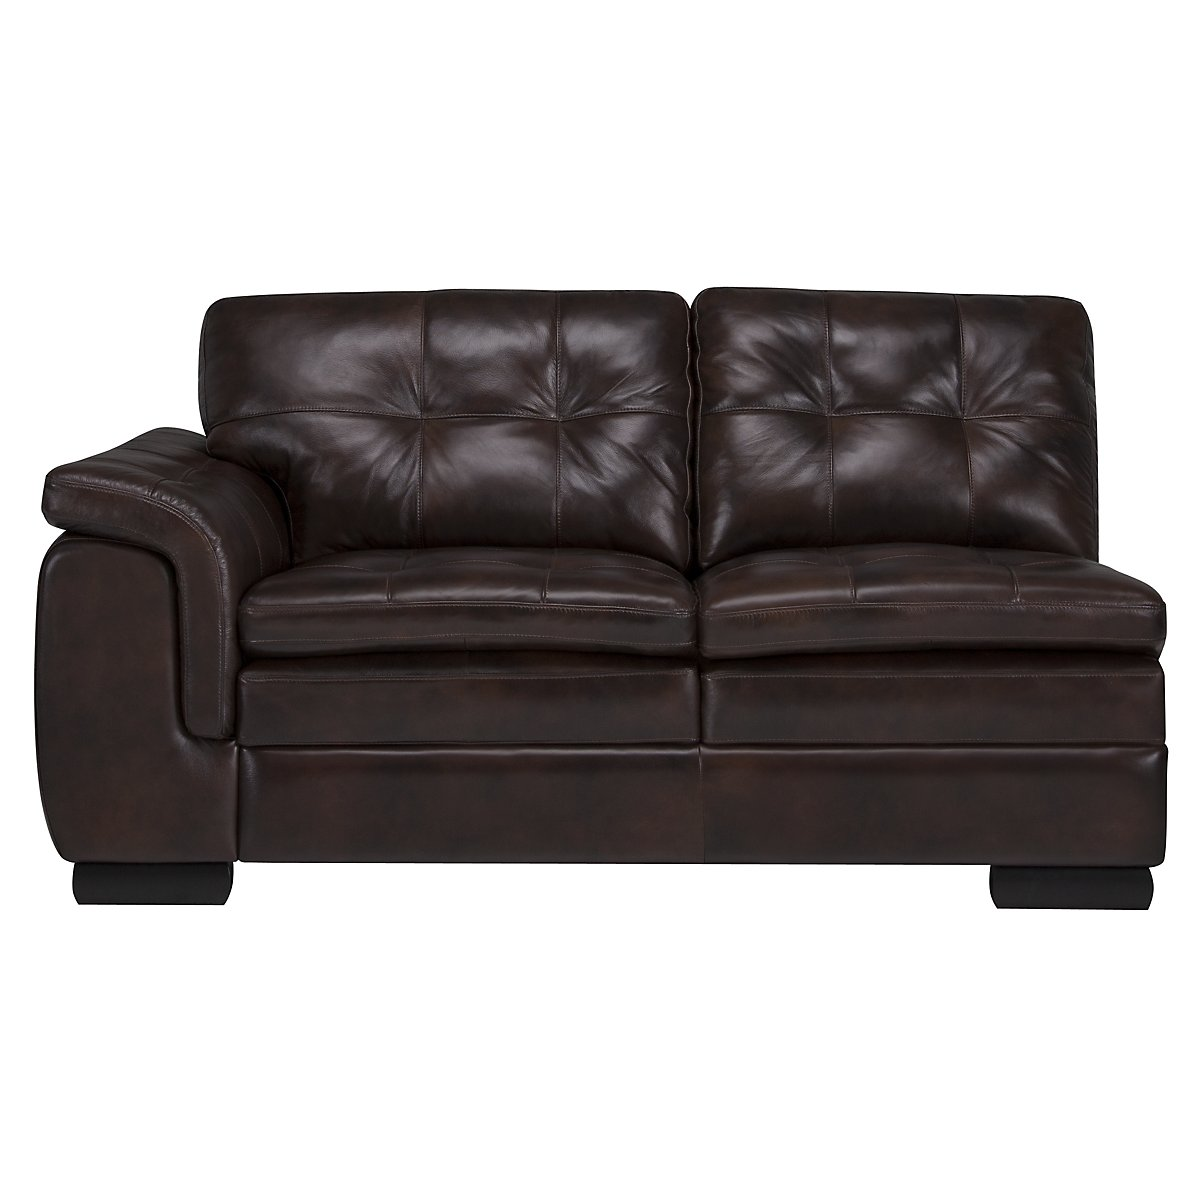 City furniture trevor dark brown leather small right for Brown leather chaise